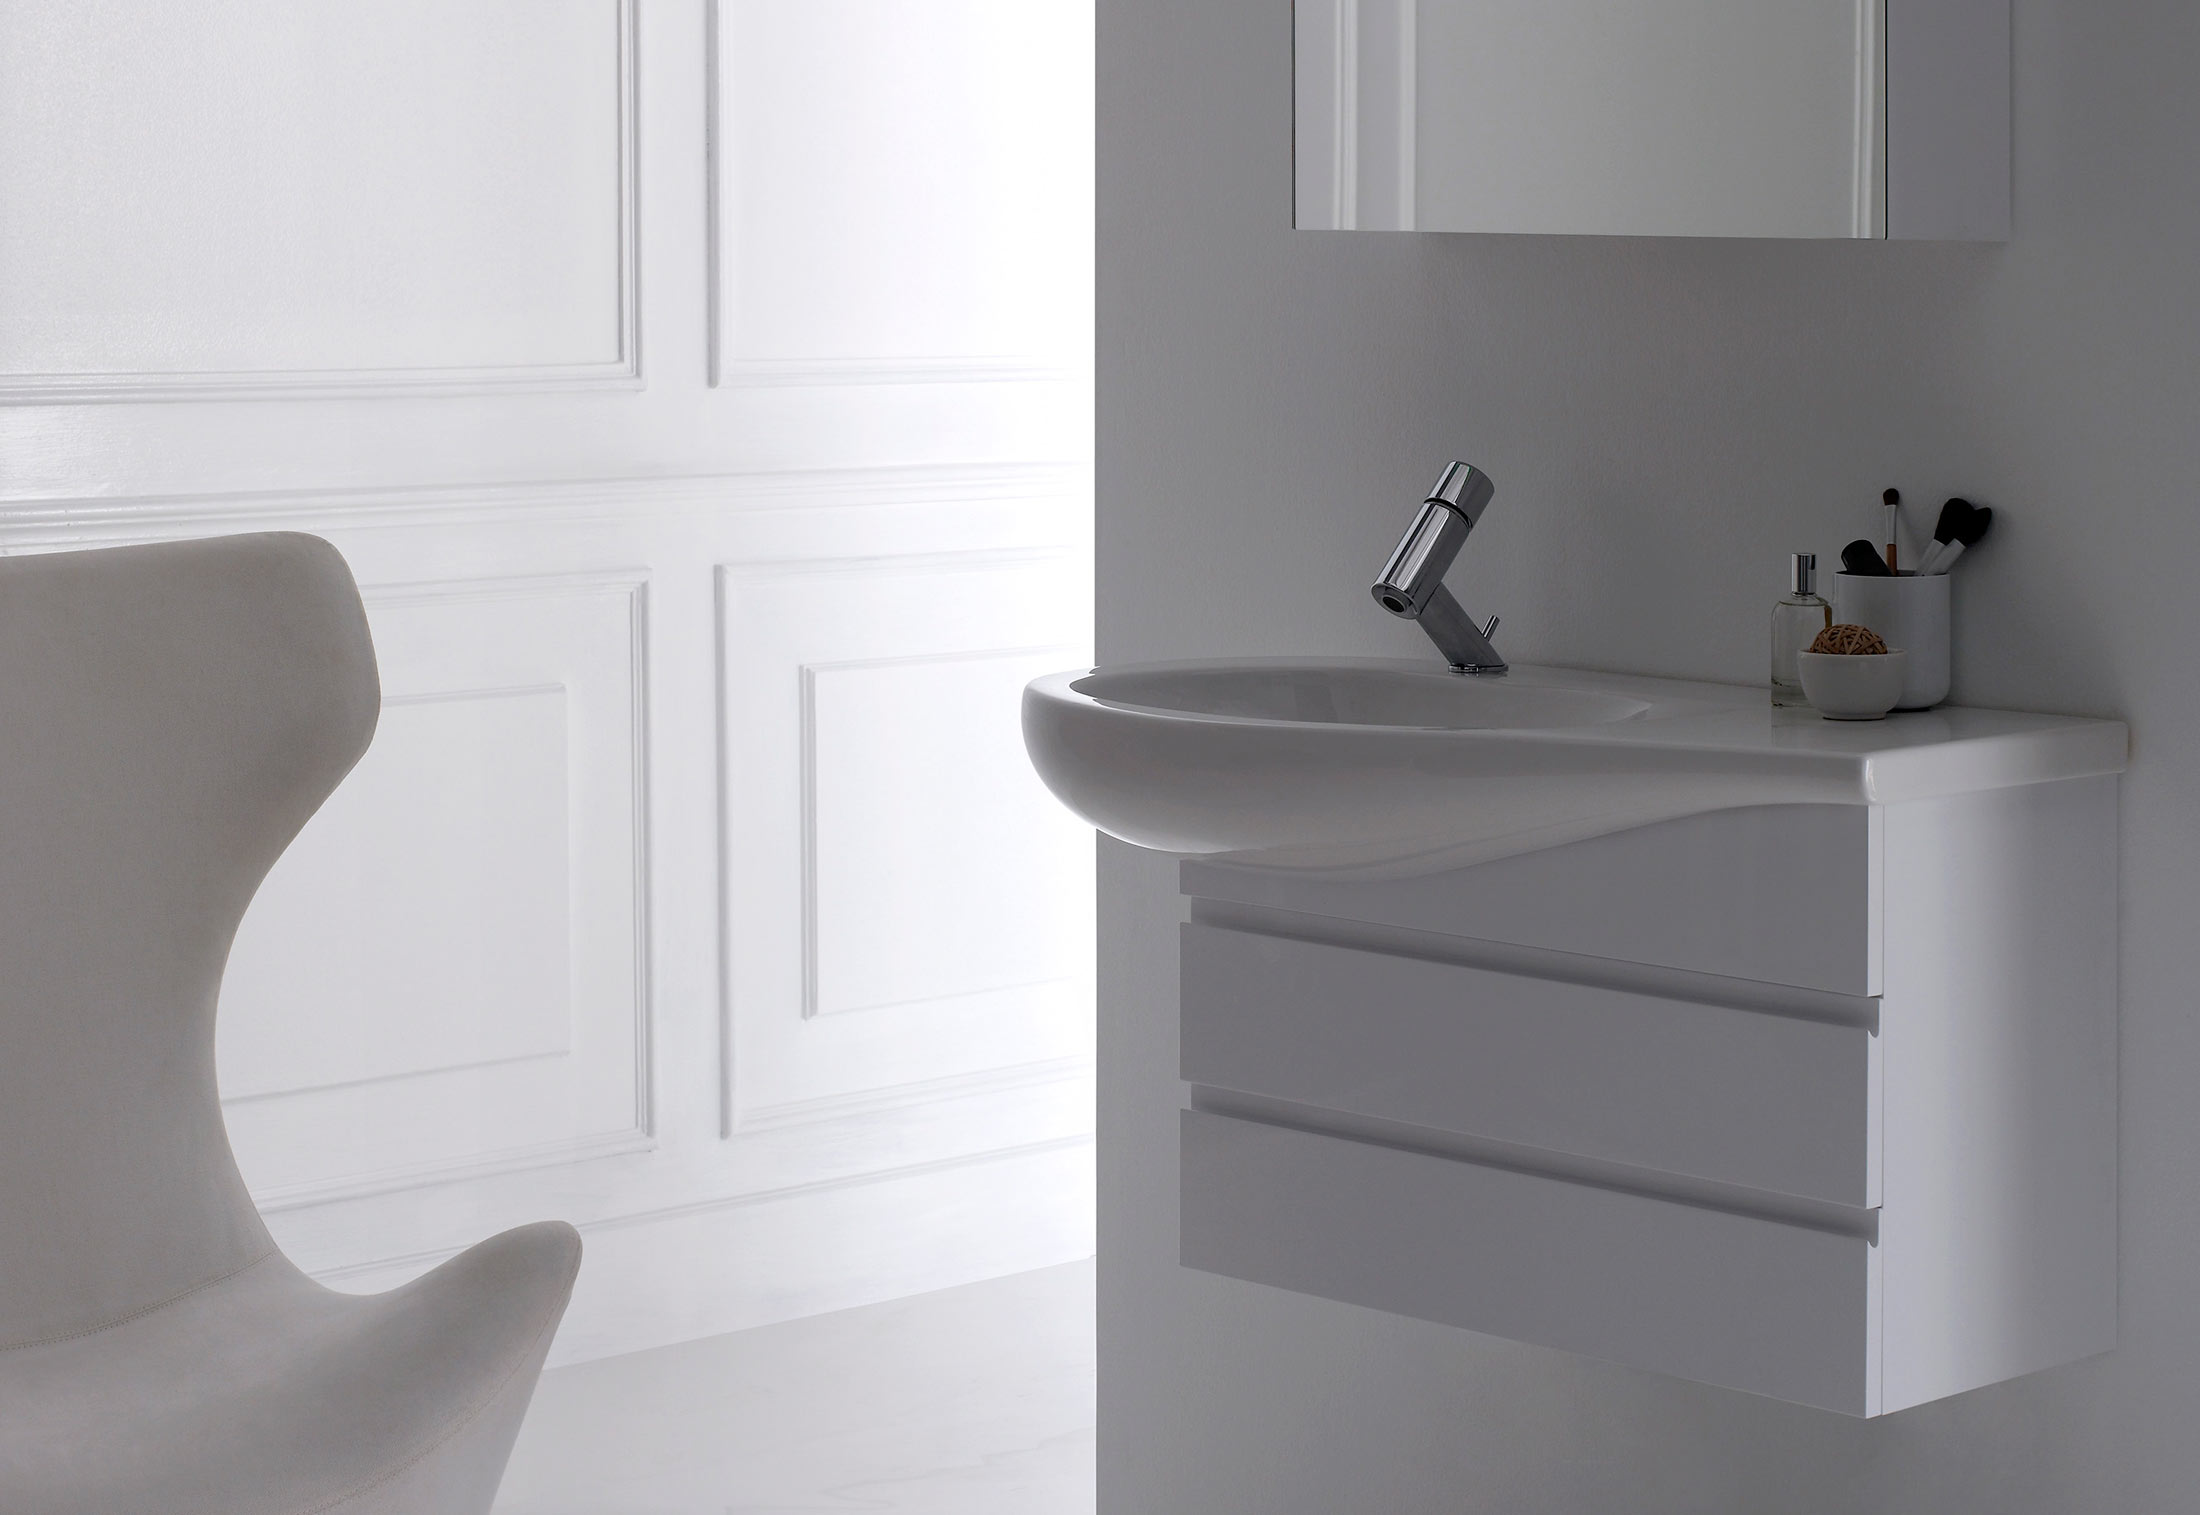 Il Bagno Alessi One single washbasin under counter by Laufen | STYLEPARK